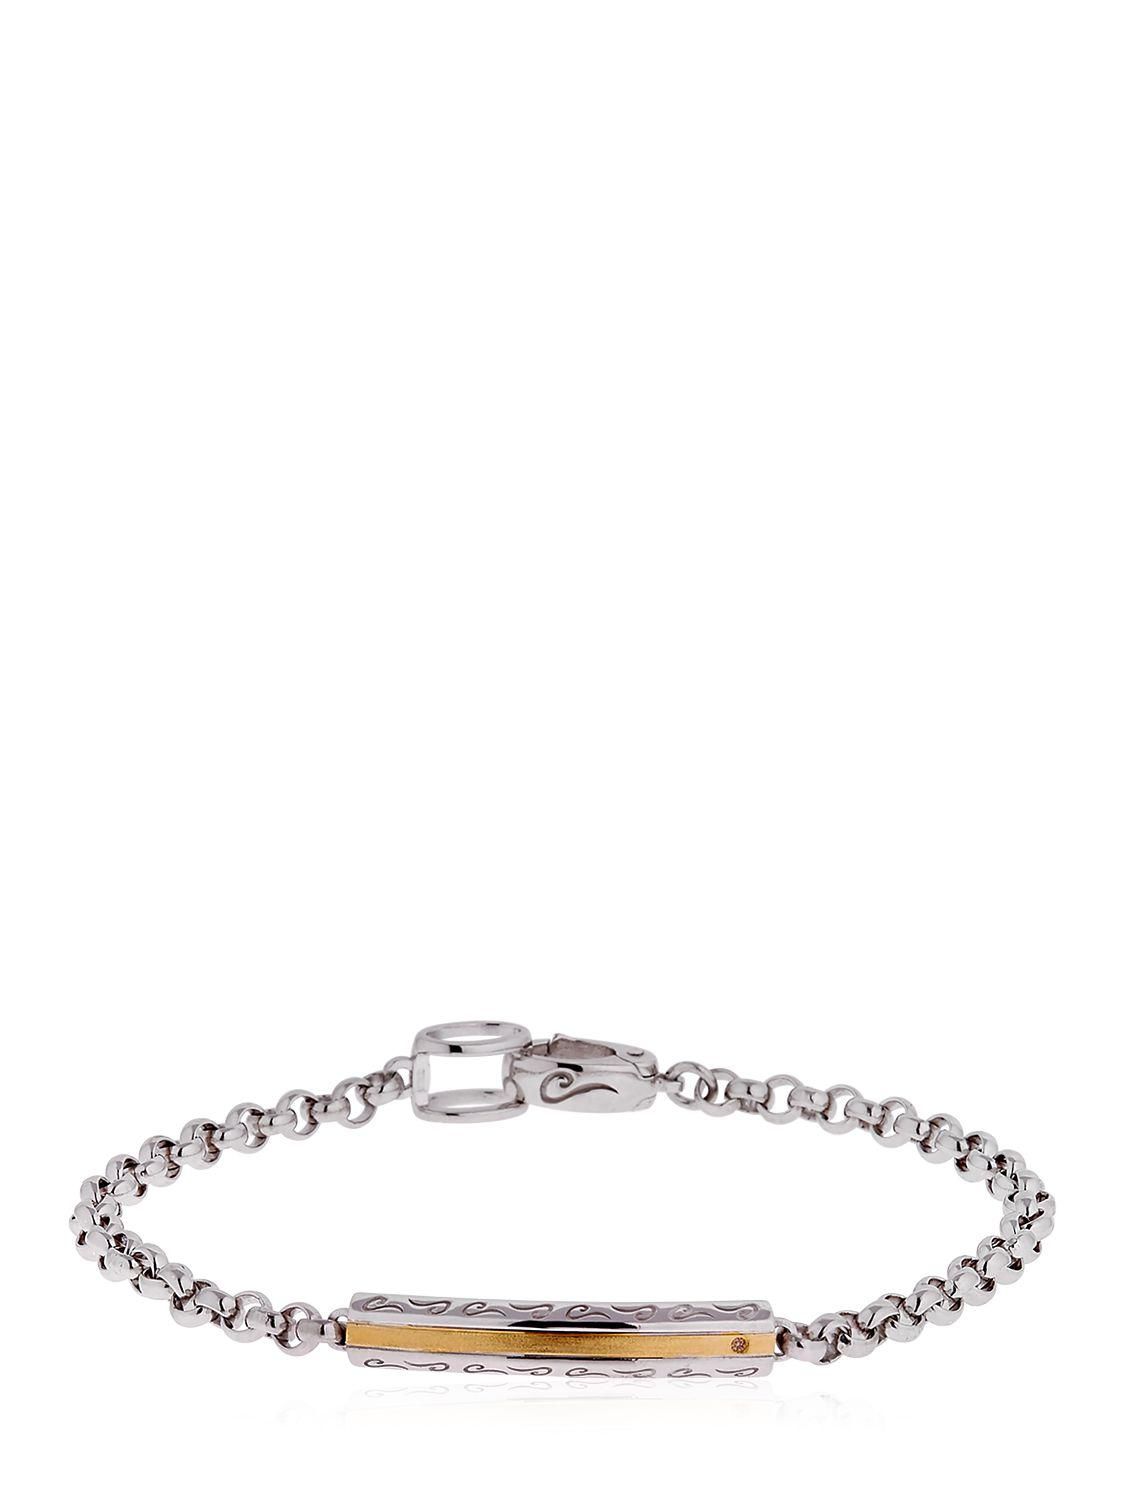 Marco Dal Maso Ara Oxidized Sterling Silver Bracelet with Champagne Diamond